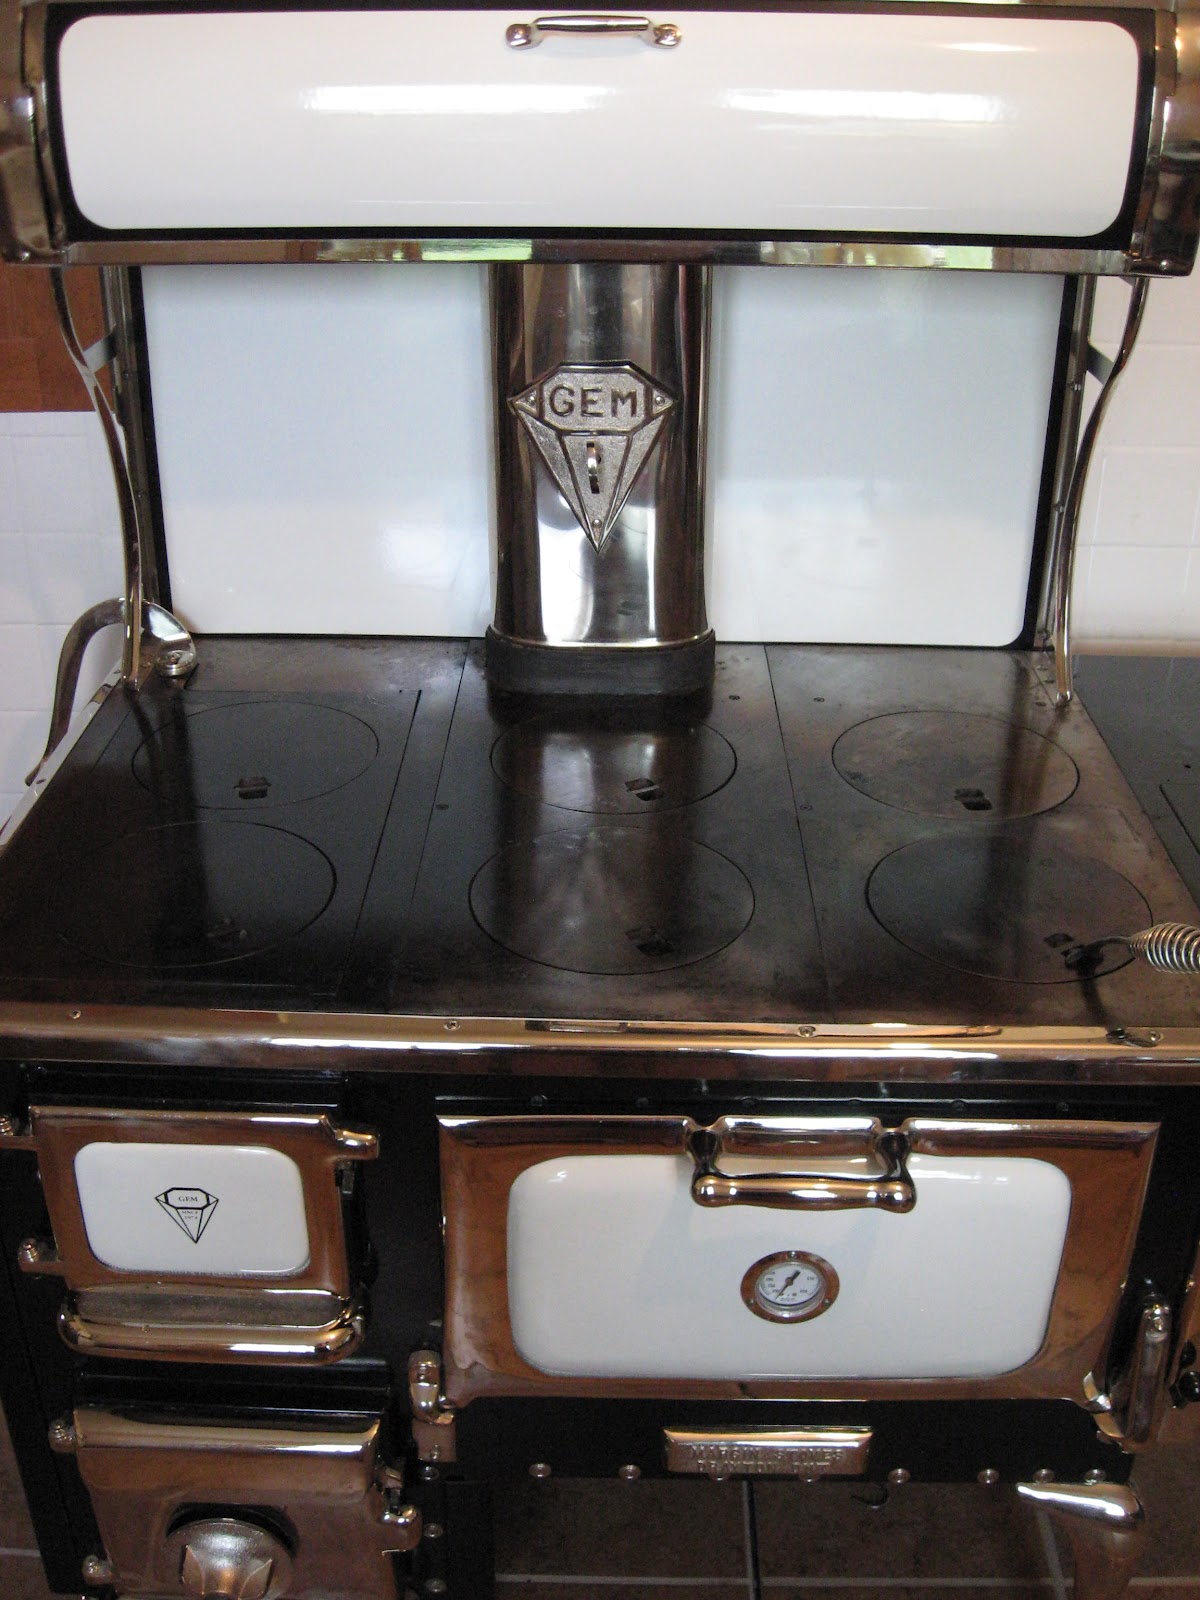 Kitchen Cook Stoves Fifth Wheel Campers With Bunkhouse And Outdoor Wood Cookstove Cooking Cleaning A Woodburning